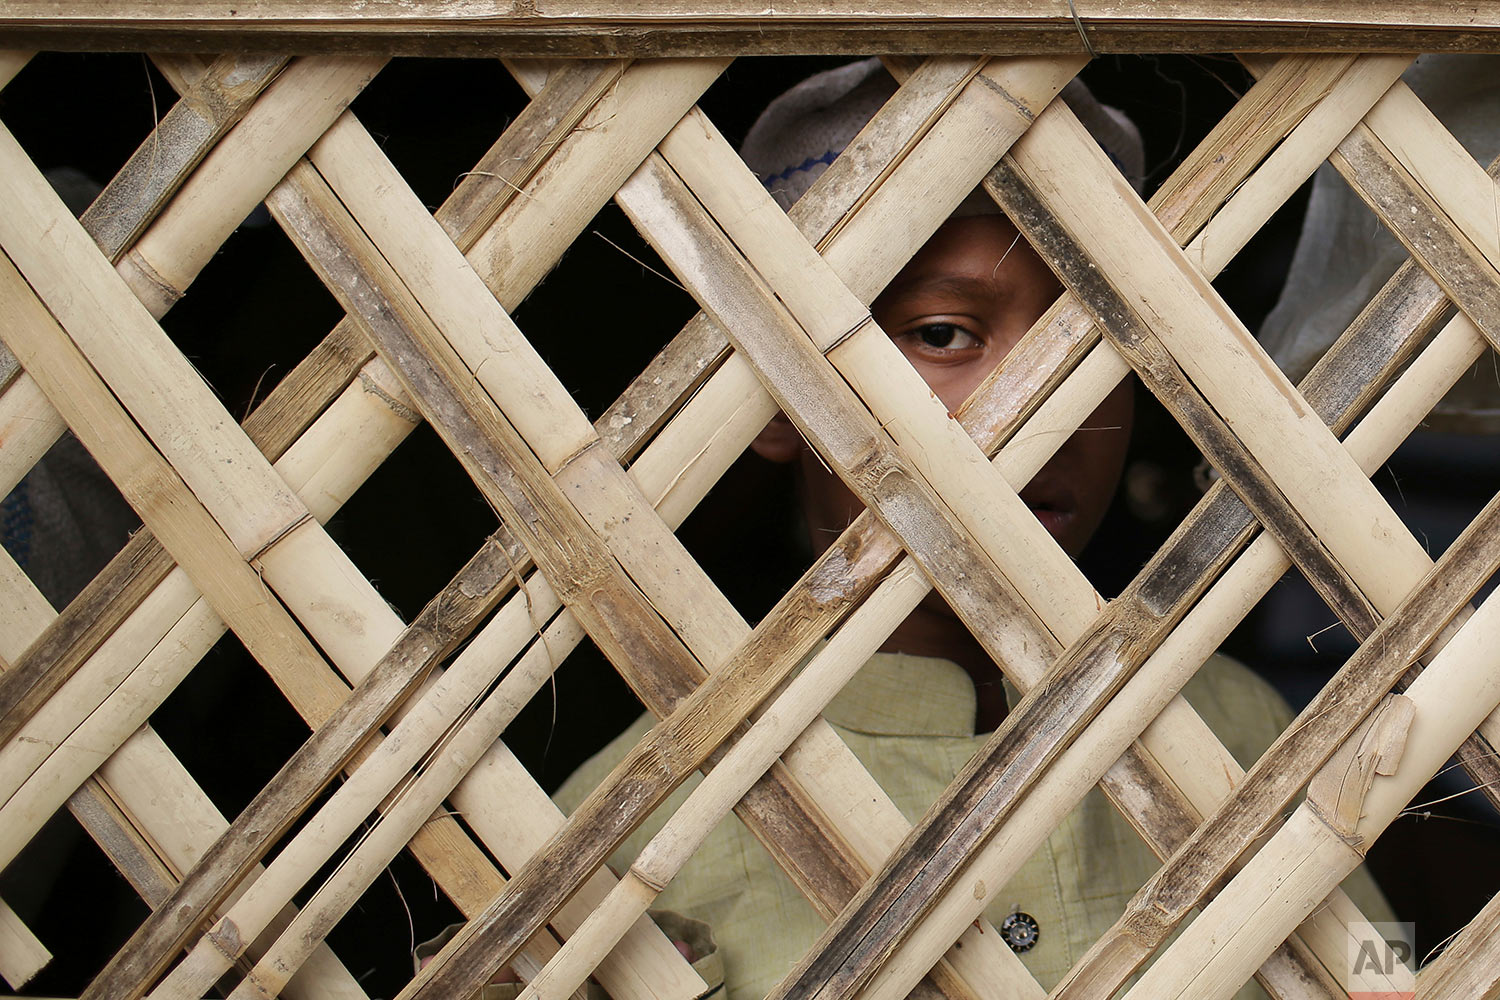 "In this Nov. 24, 2017, file photo, a young Rohingya Muslim boy looks out from a makeshift mosque before Friday prayers in Jamtoli refugee camp, in Bangladesh. Since late August, more than 620,000 Rohingya have fled Myanmar's Rakhine state into neighboring Bangladesh, seeking safety from what the military described as ""clearance operations."" The United Nations and others have said the military's actions appeared to be a campaign of ""ethnic cleansing,"" using acts of violence and intimidation and burning down homes to force the Rohingya to leave their communities. (AP Photo/Wong Maye-E, File)"